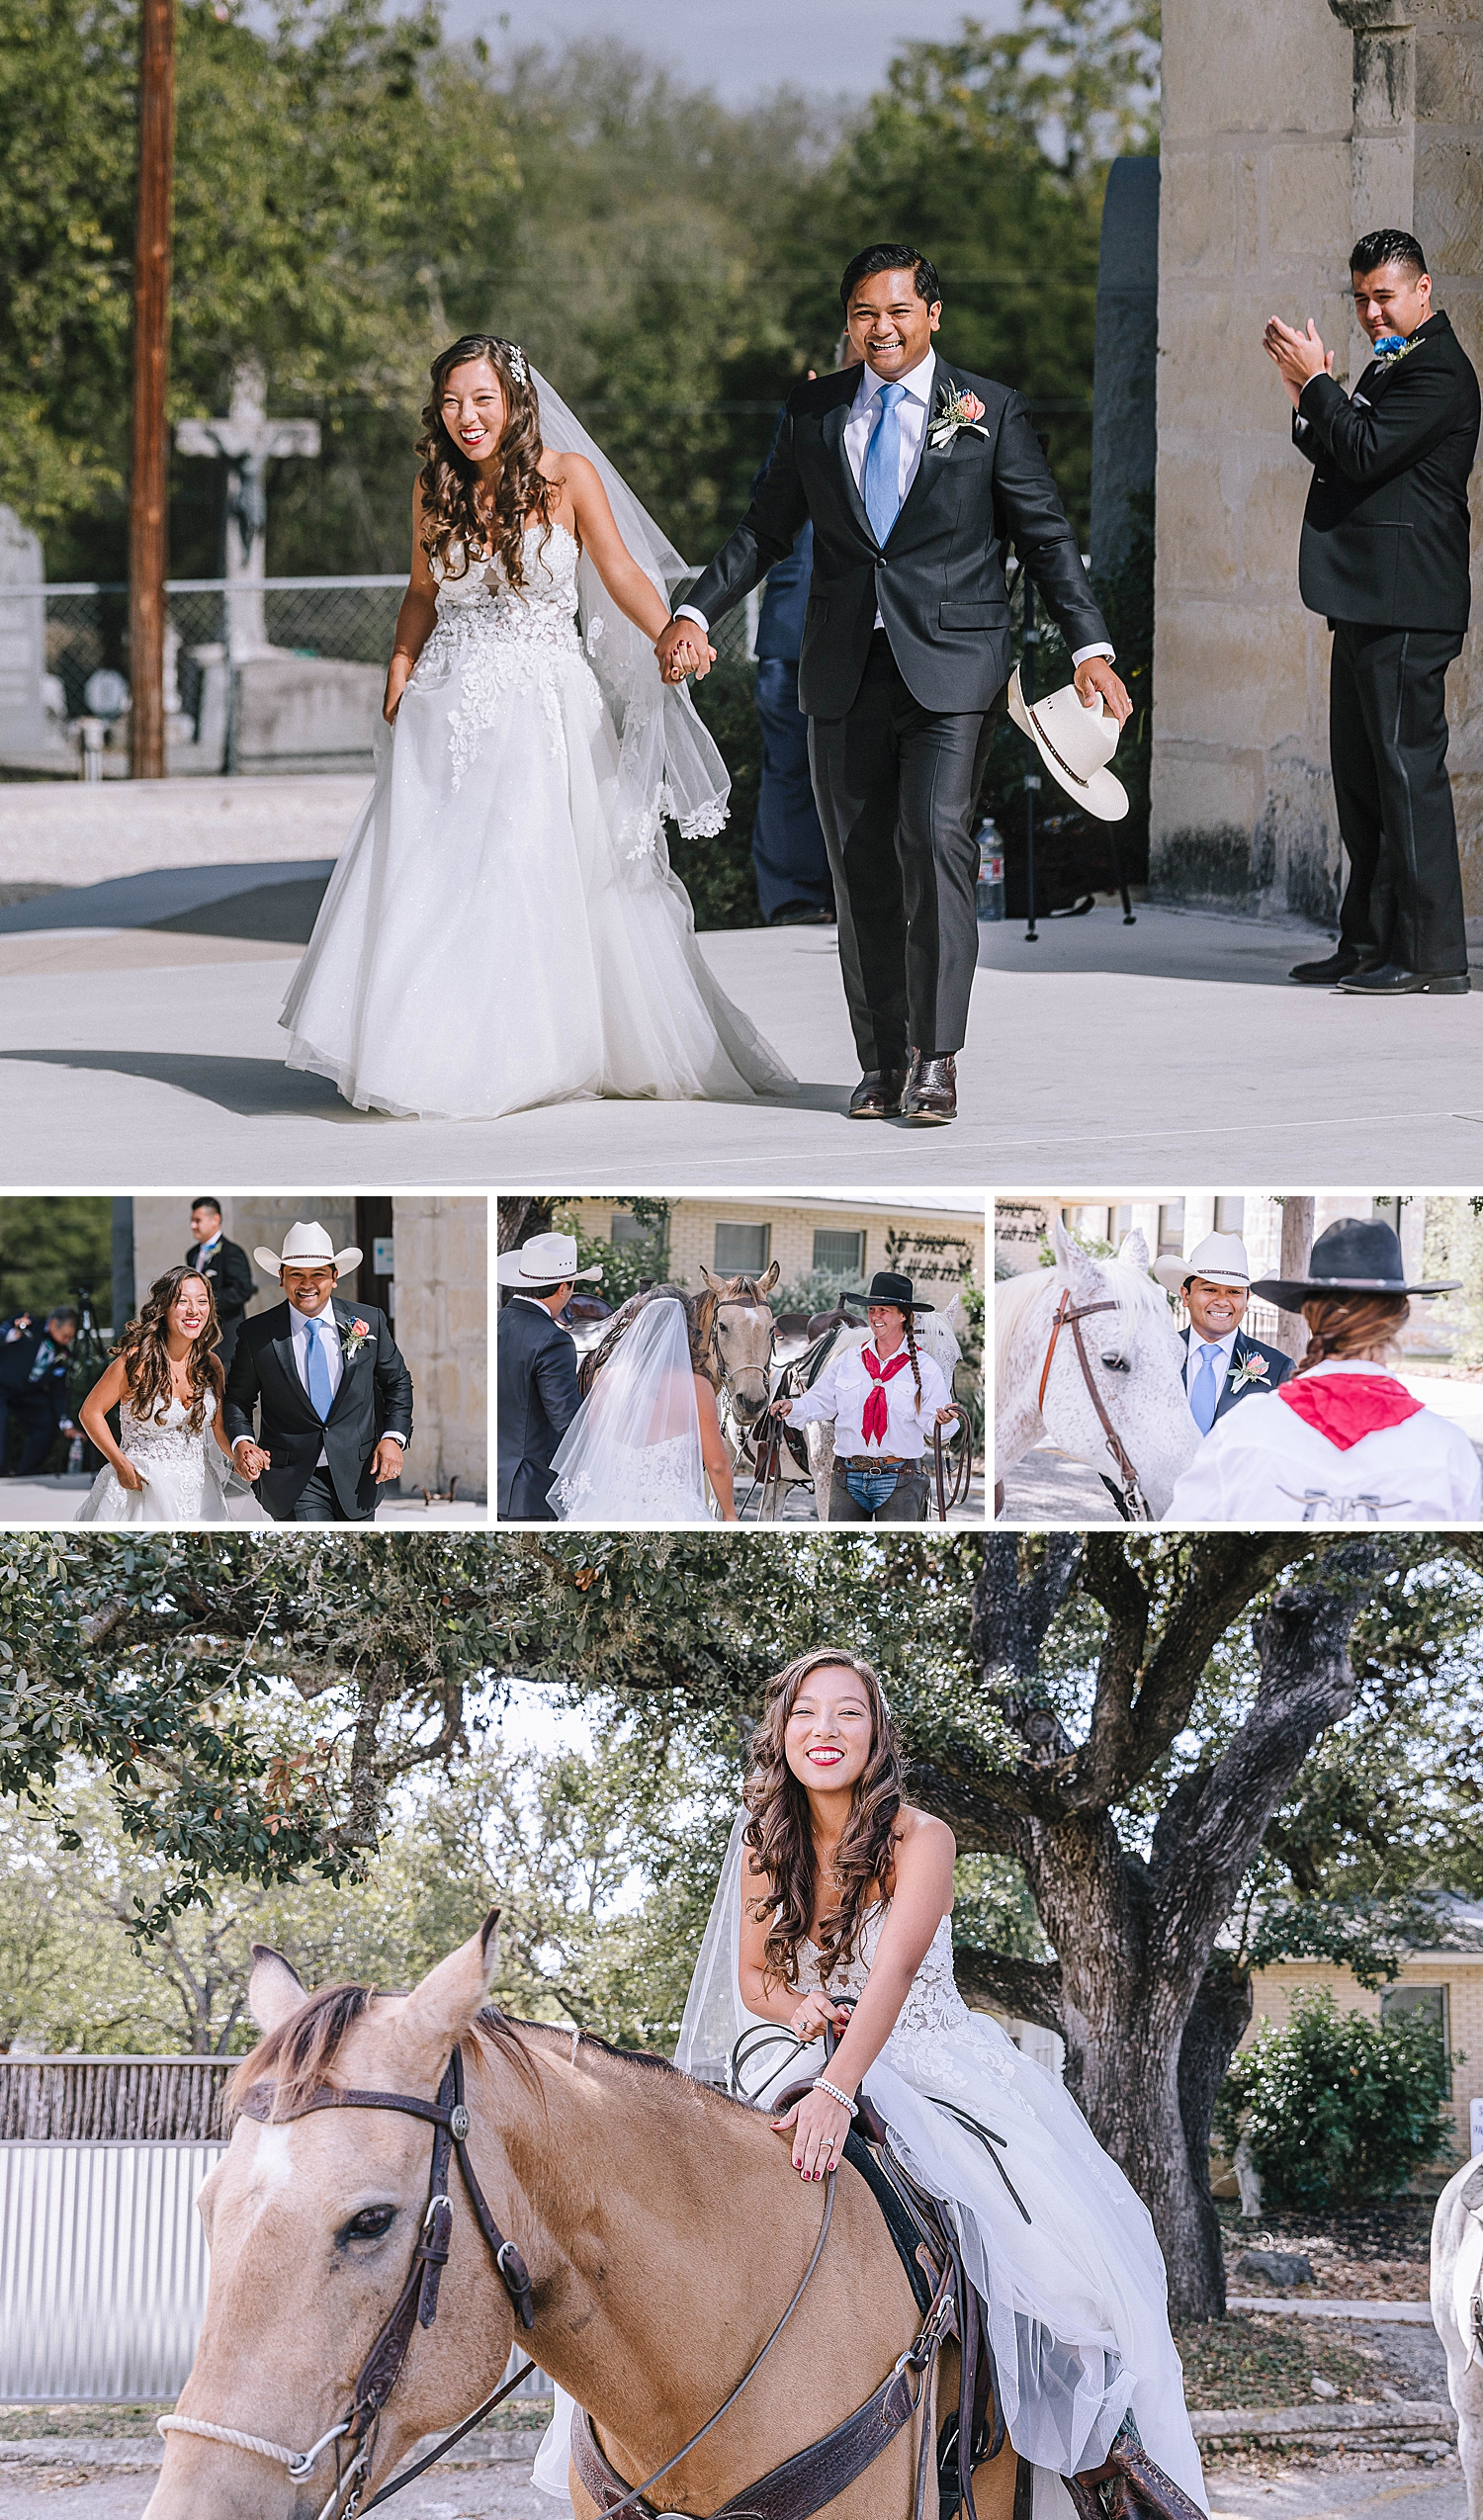 Bandera-Texas-Wedding-Photographer-Bride-Groom-on-Horses-Carly-Barton-Photography_0032.jpg